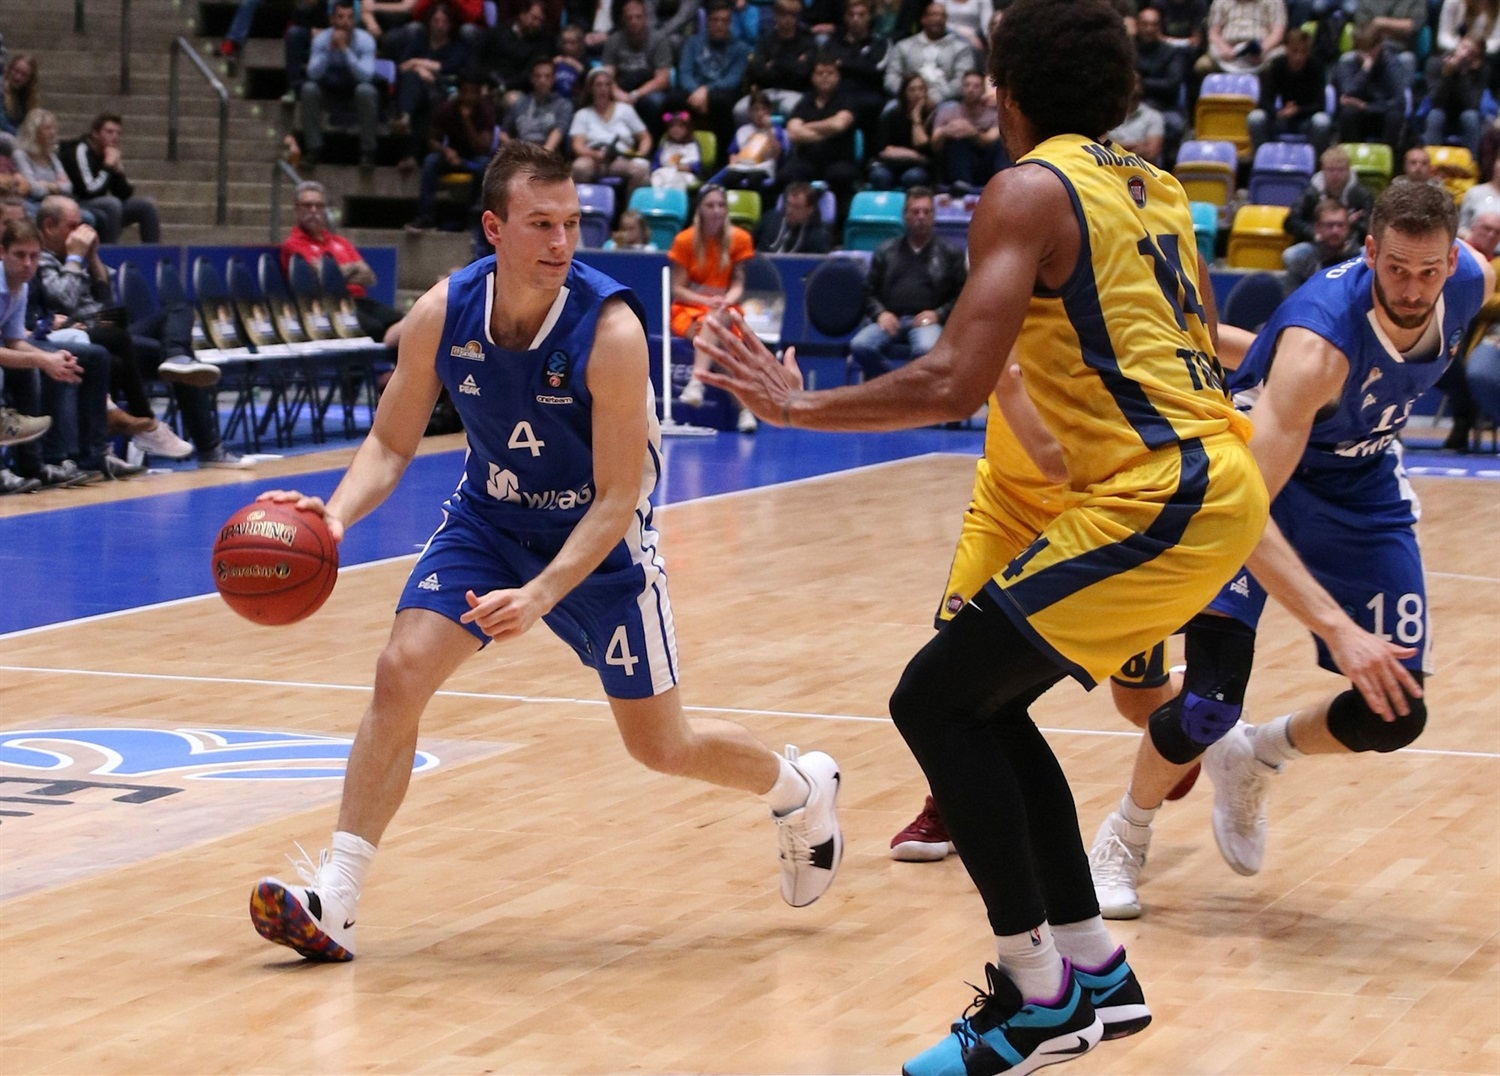 Brady Thomas Heslip - Fraport Skyliners Frankfurt (photo Fraport Skyliners) - EC18